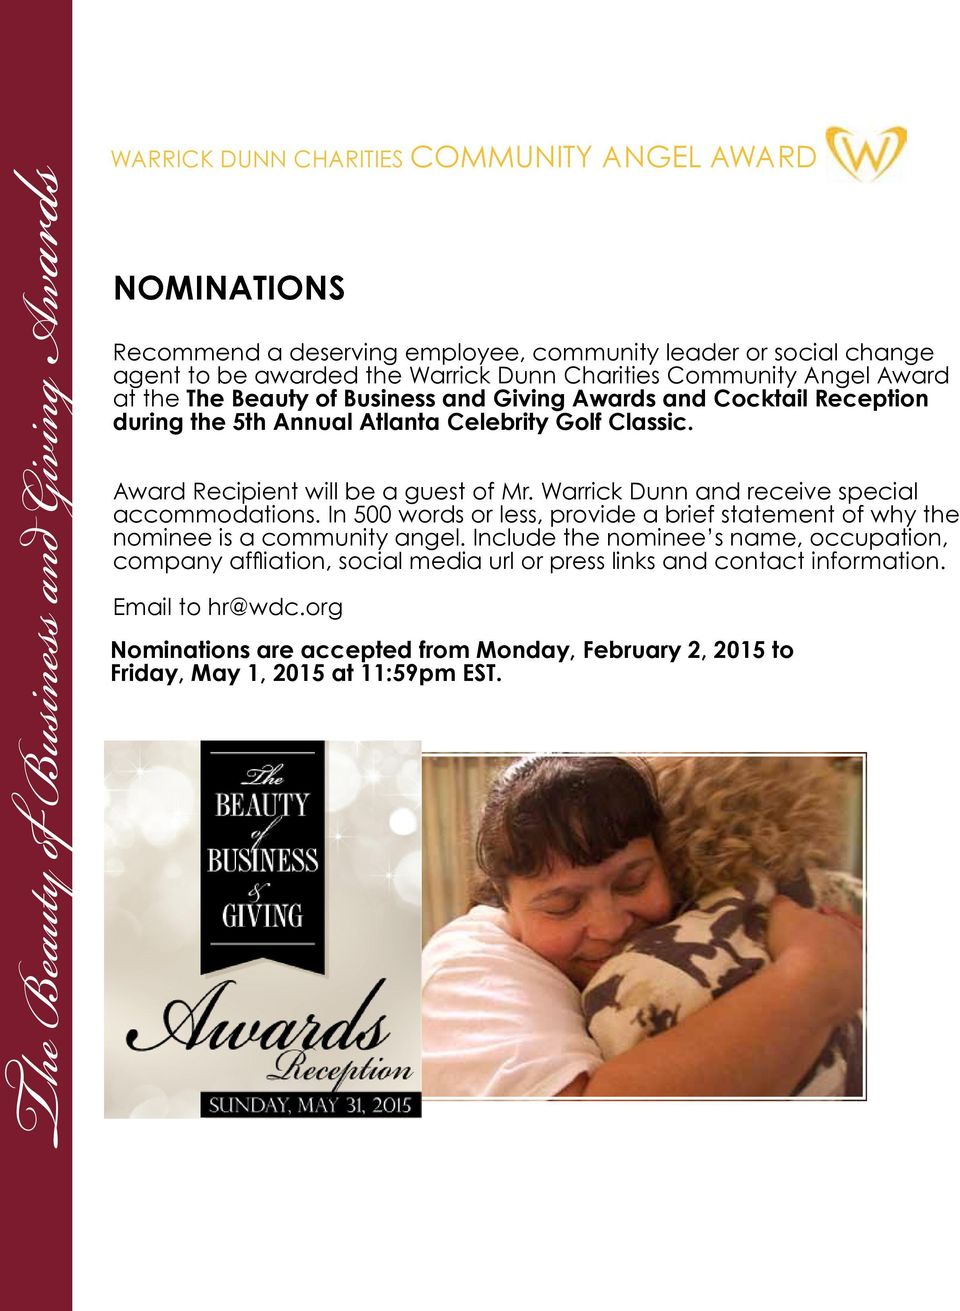 Award Recipient will be a guest of Mr. Warrick Dunn and receive special accommodations. In 500 words or less, provide a brief statement of why the nominee is a community angel.